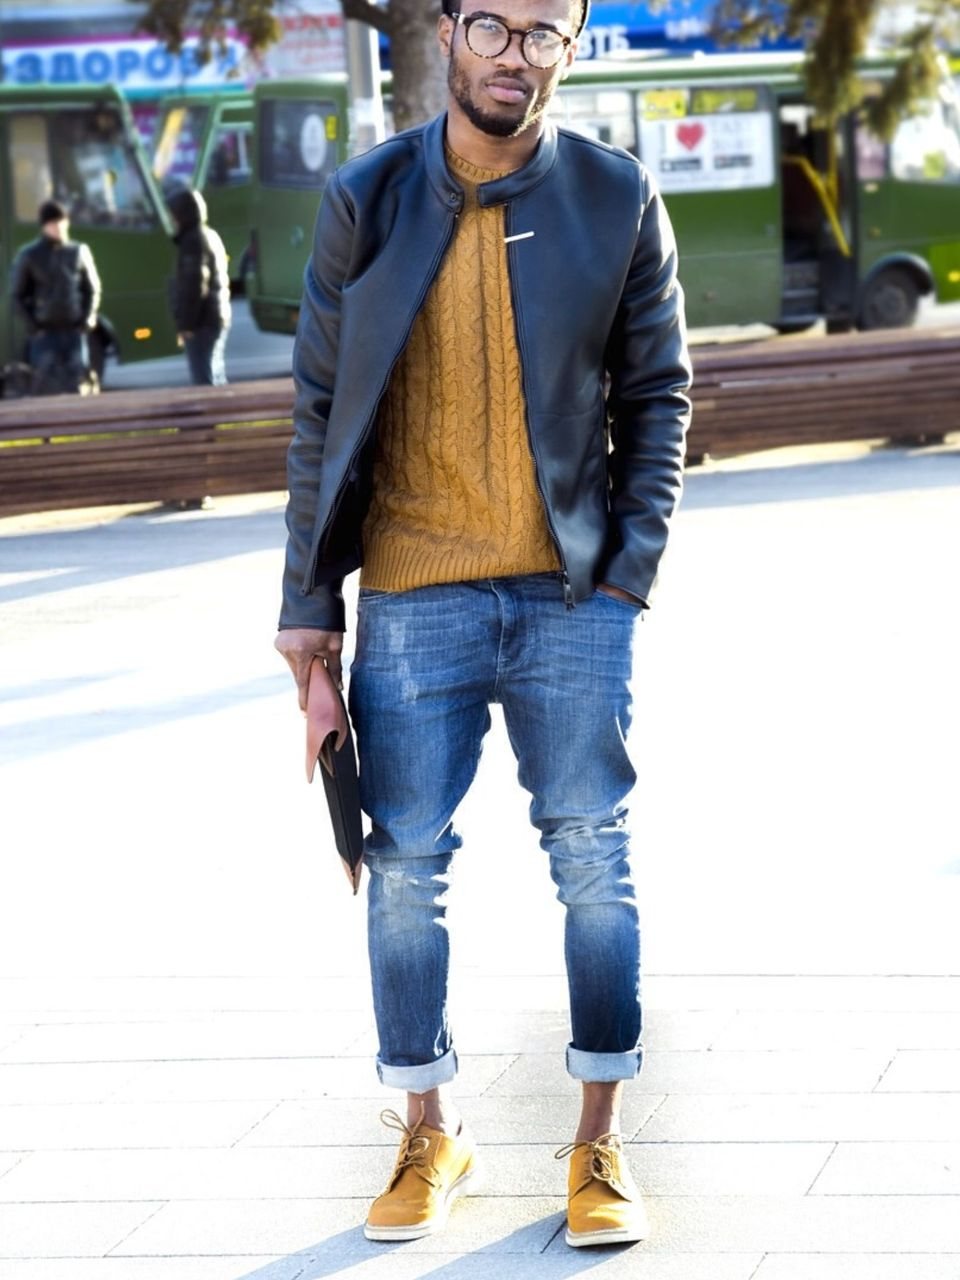 Casual Indie Mens Fashion Outfits Style 8: Casual Indie Mens Fashion Outfits Style 58